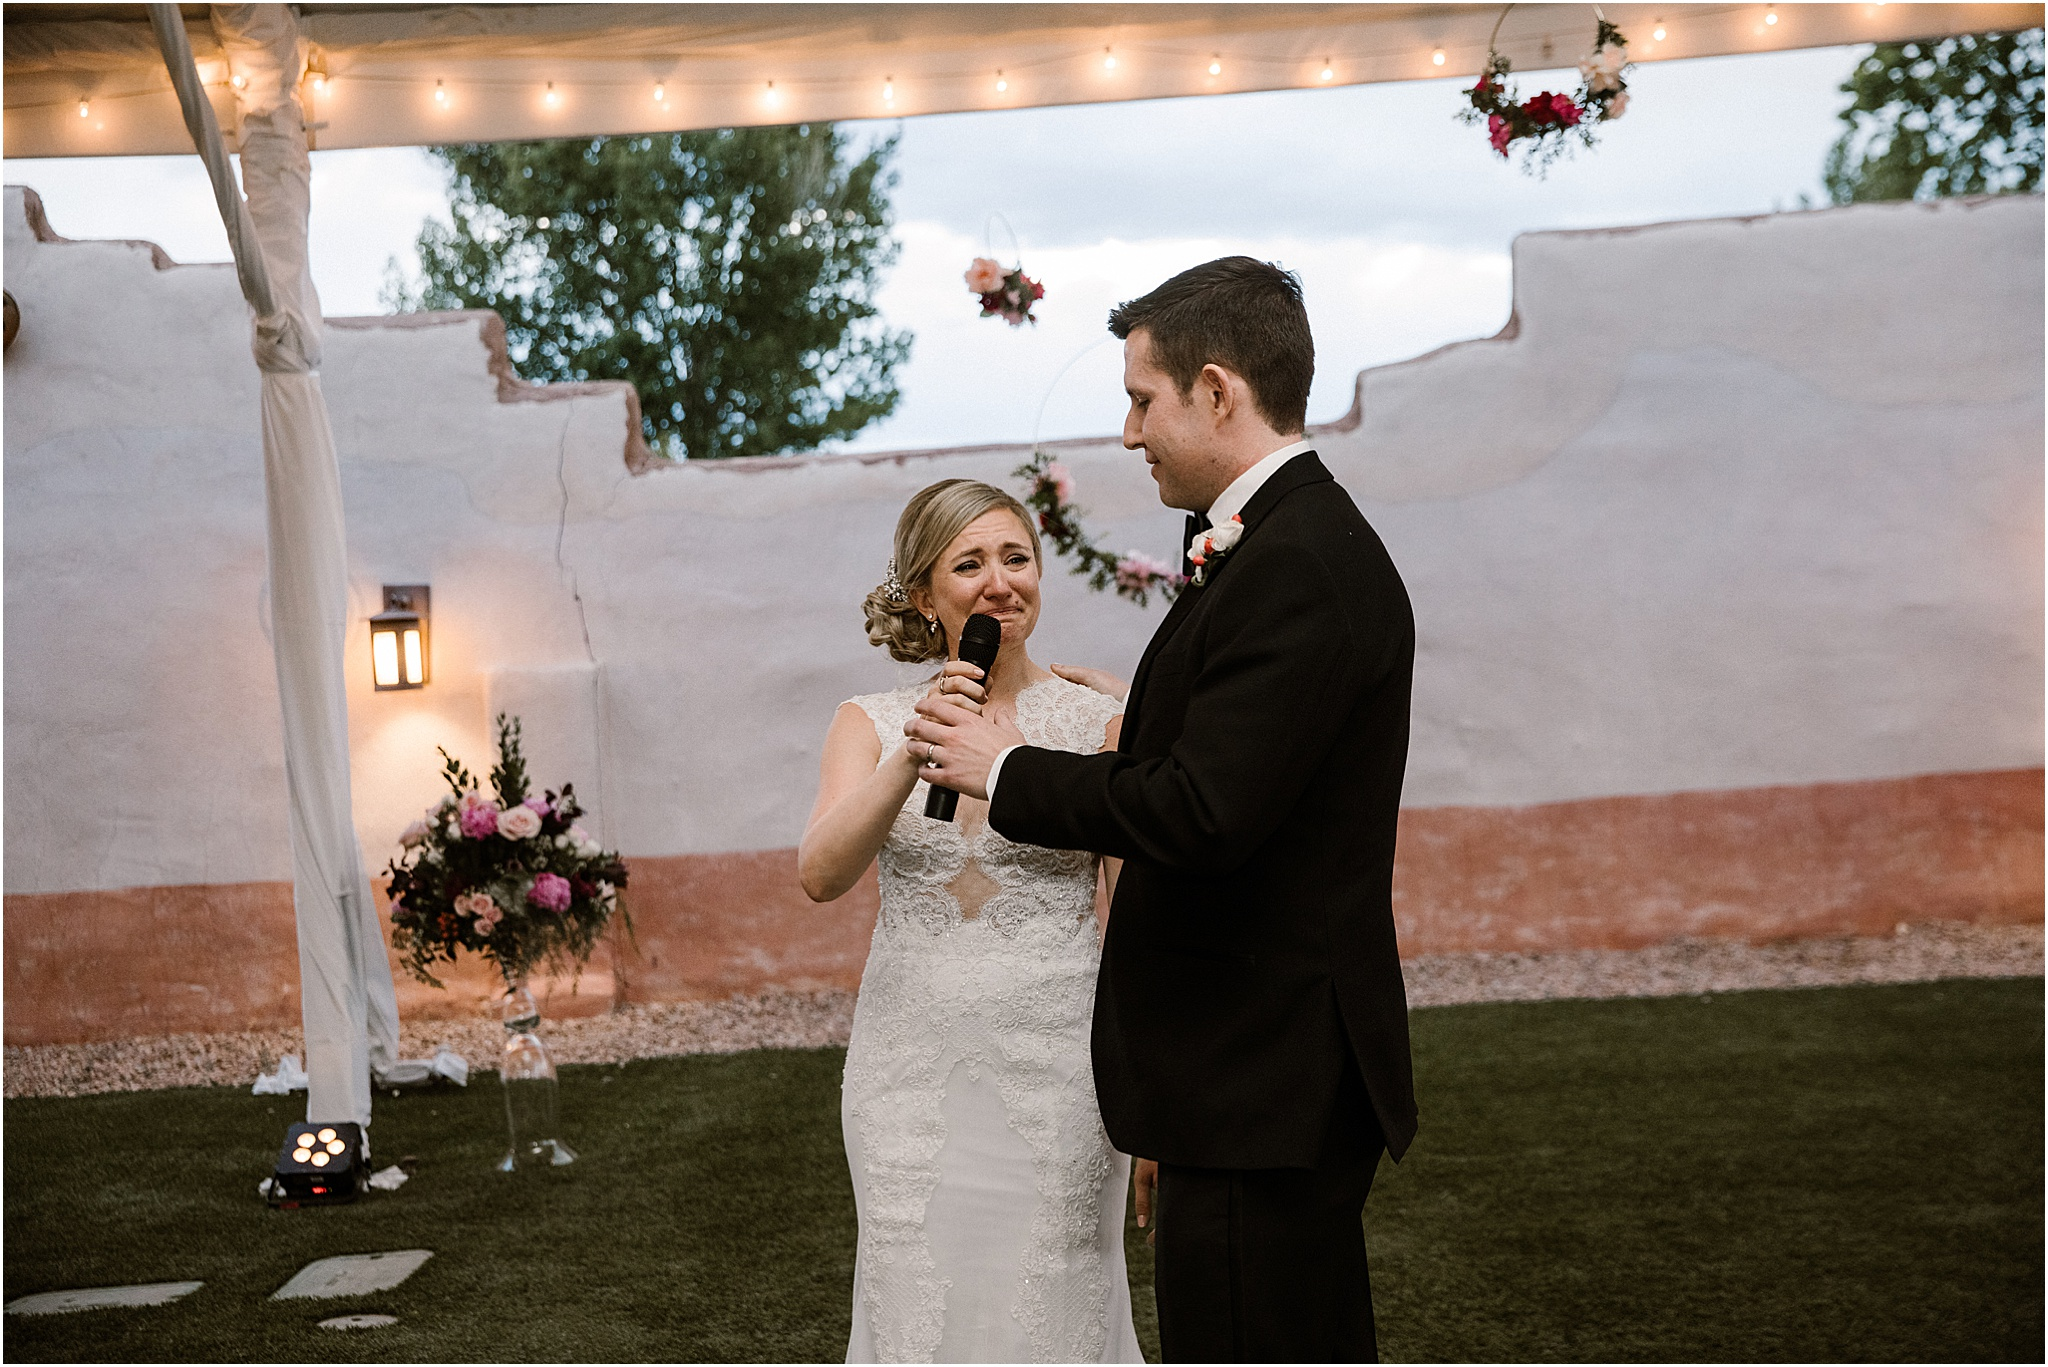 JENNA_JEROME_BLUE ROSE PHOTOGRAPHY_ABQ WEDDING_62